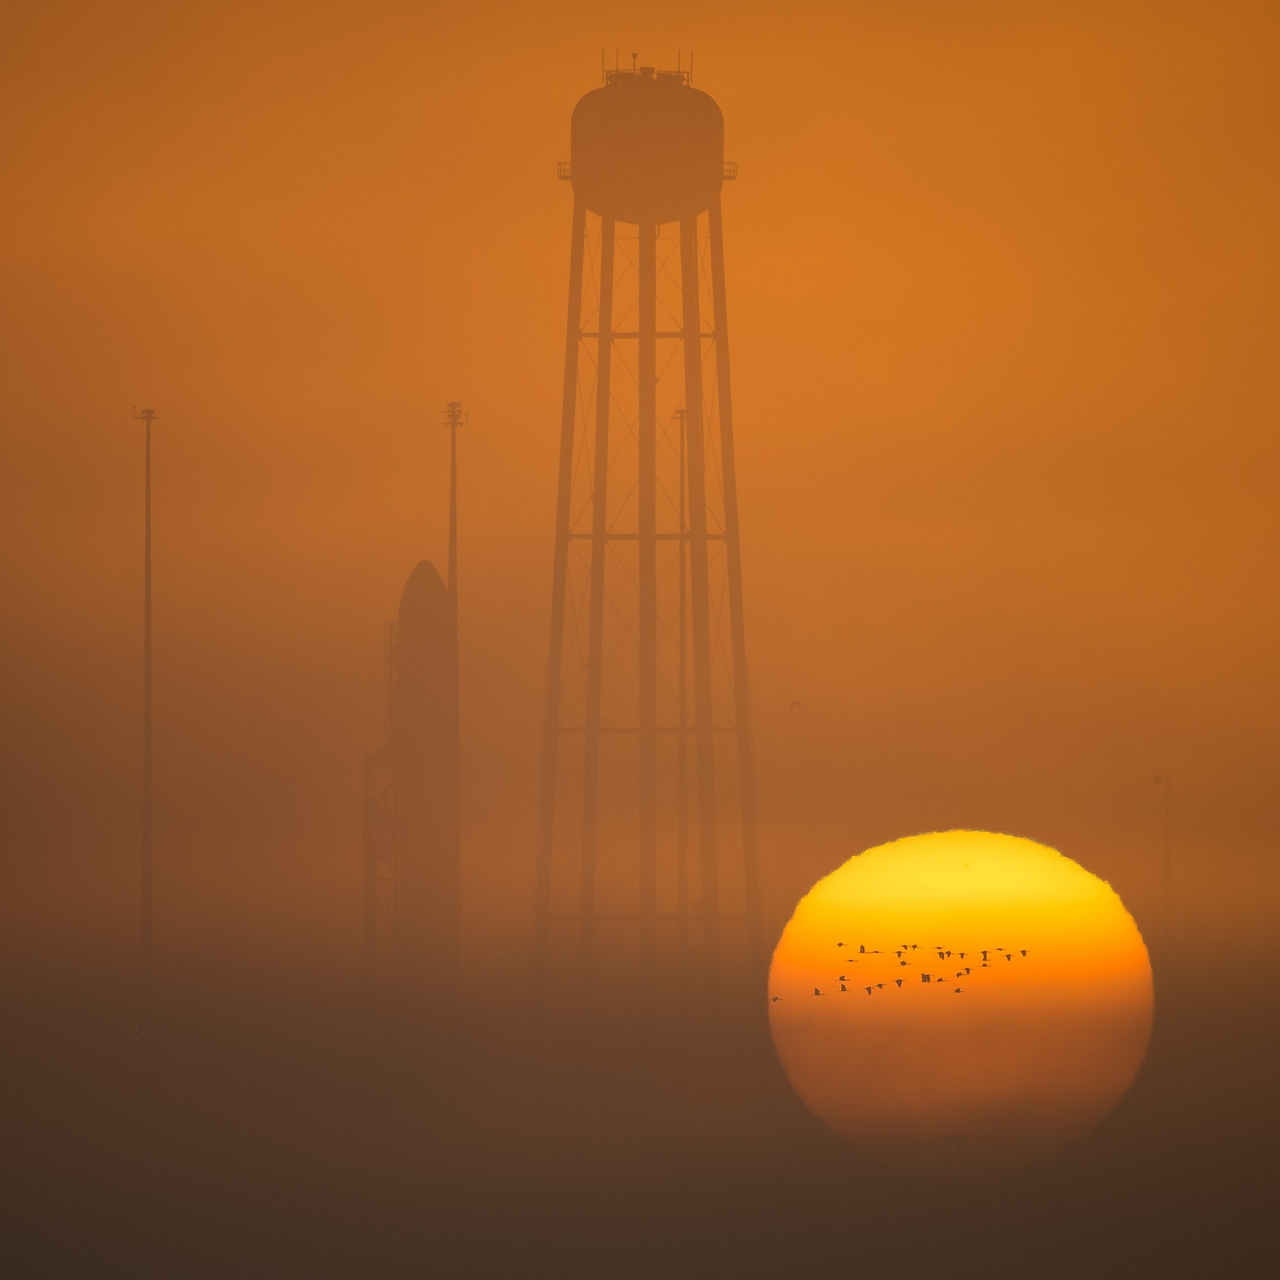 photos-of-the-launch-of-the-russian-spacecraft-soyuz-ms-02-and-the-american-antares-20